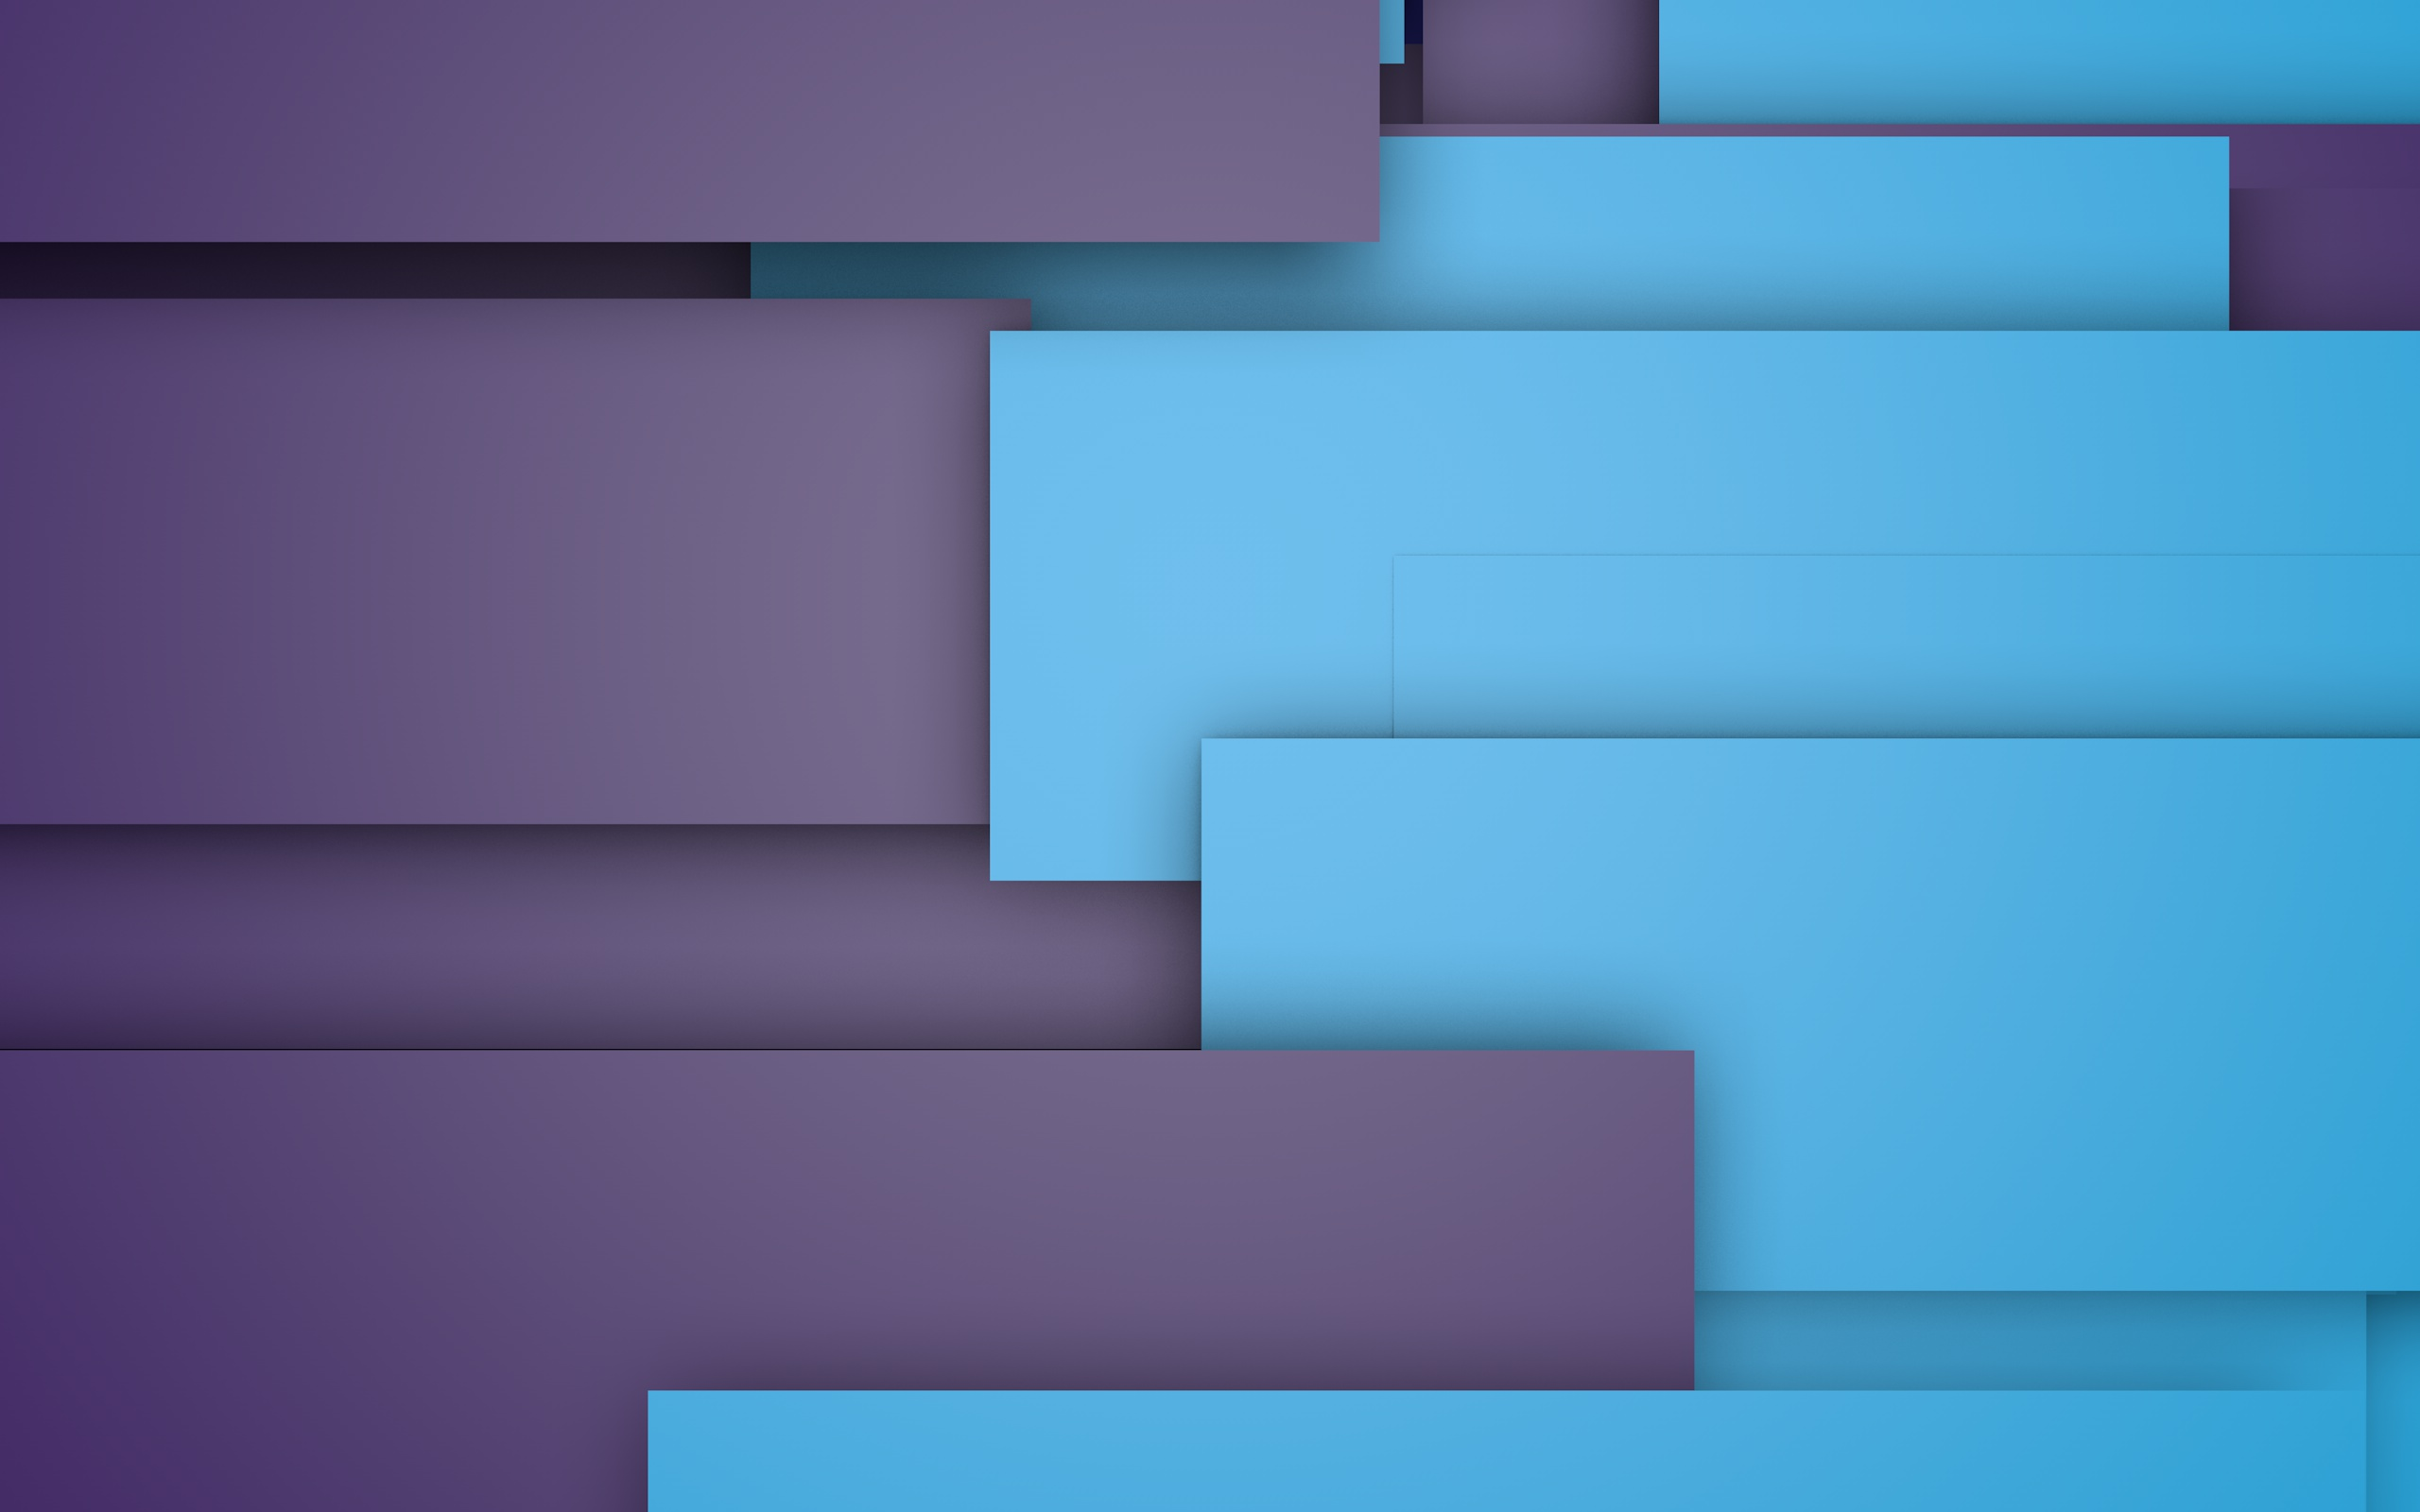 Material Abstract Design Hd Abstract 4k Wallpapers Images